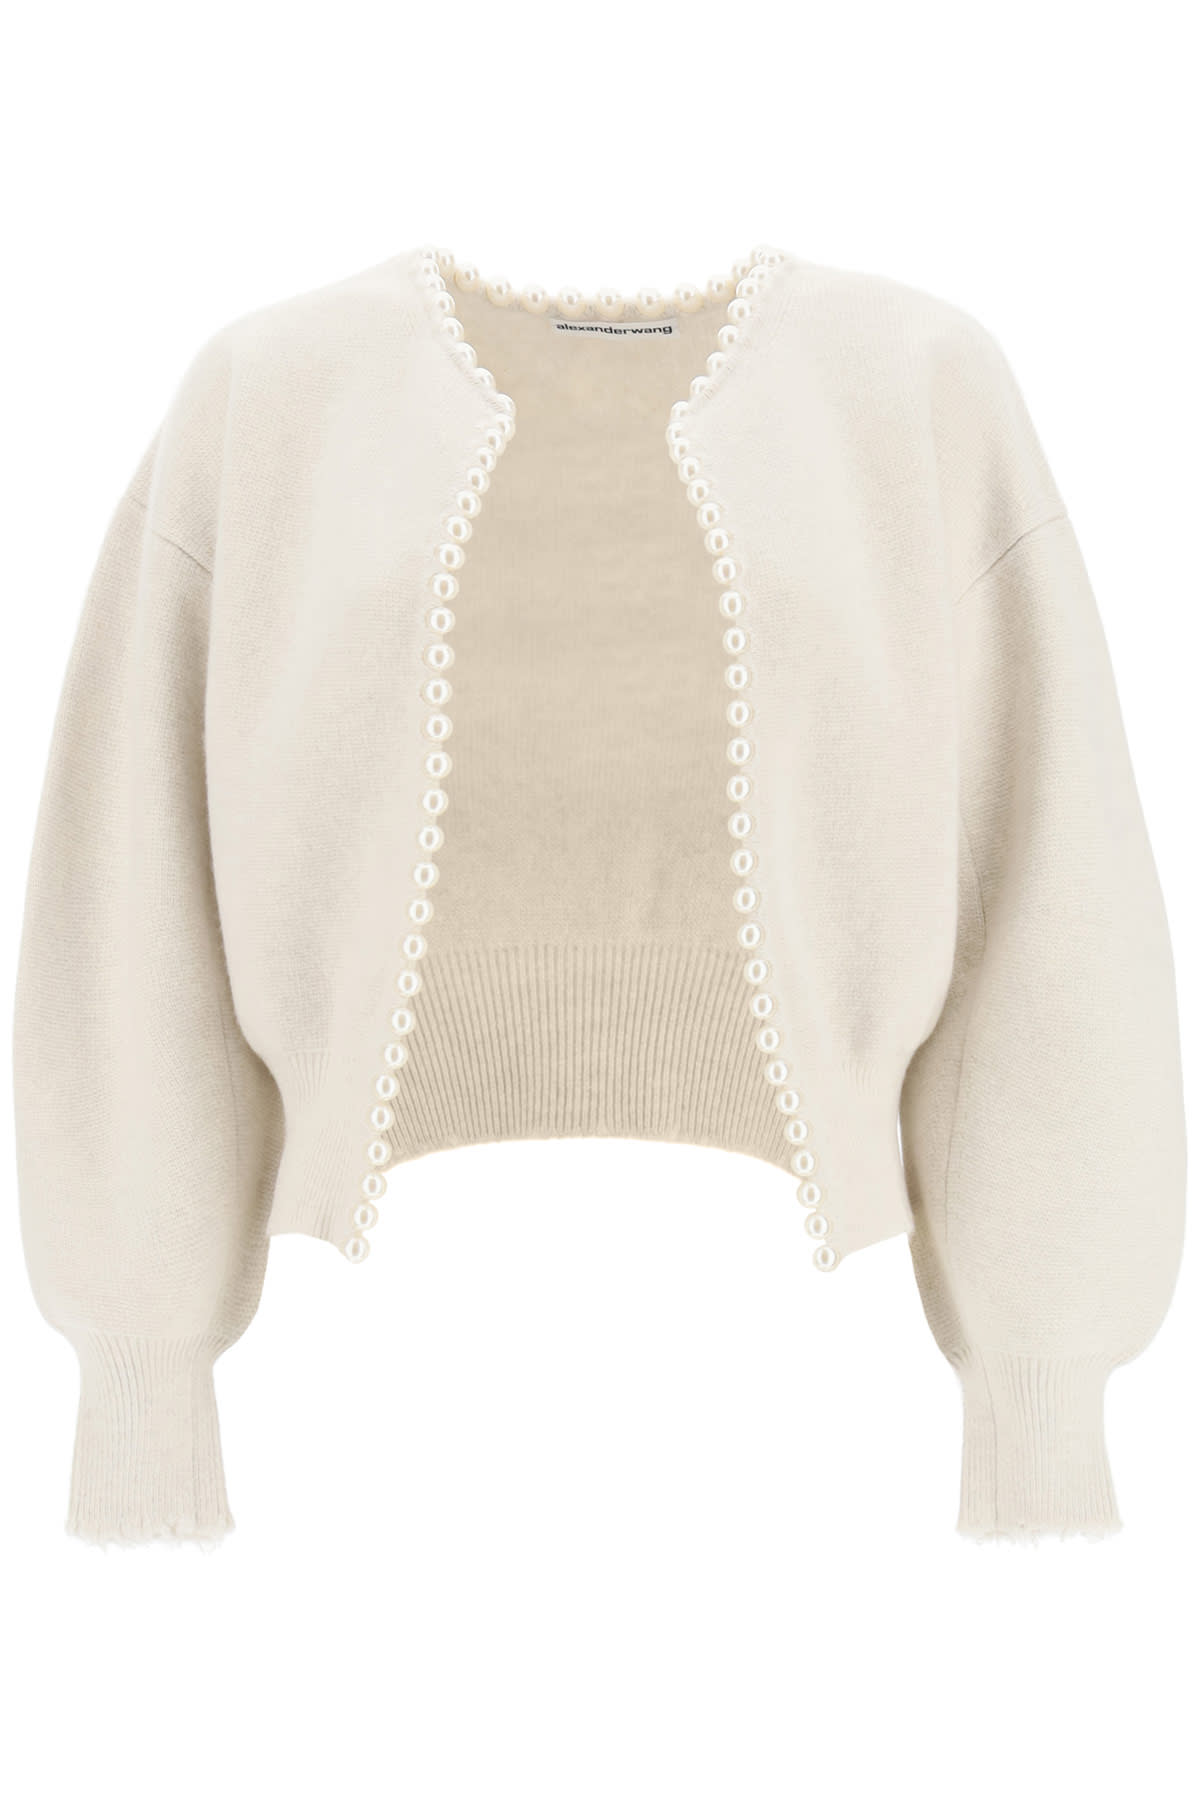 Alexander Wang CROPPED CARDIGAN WITH PEARLS